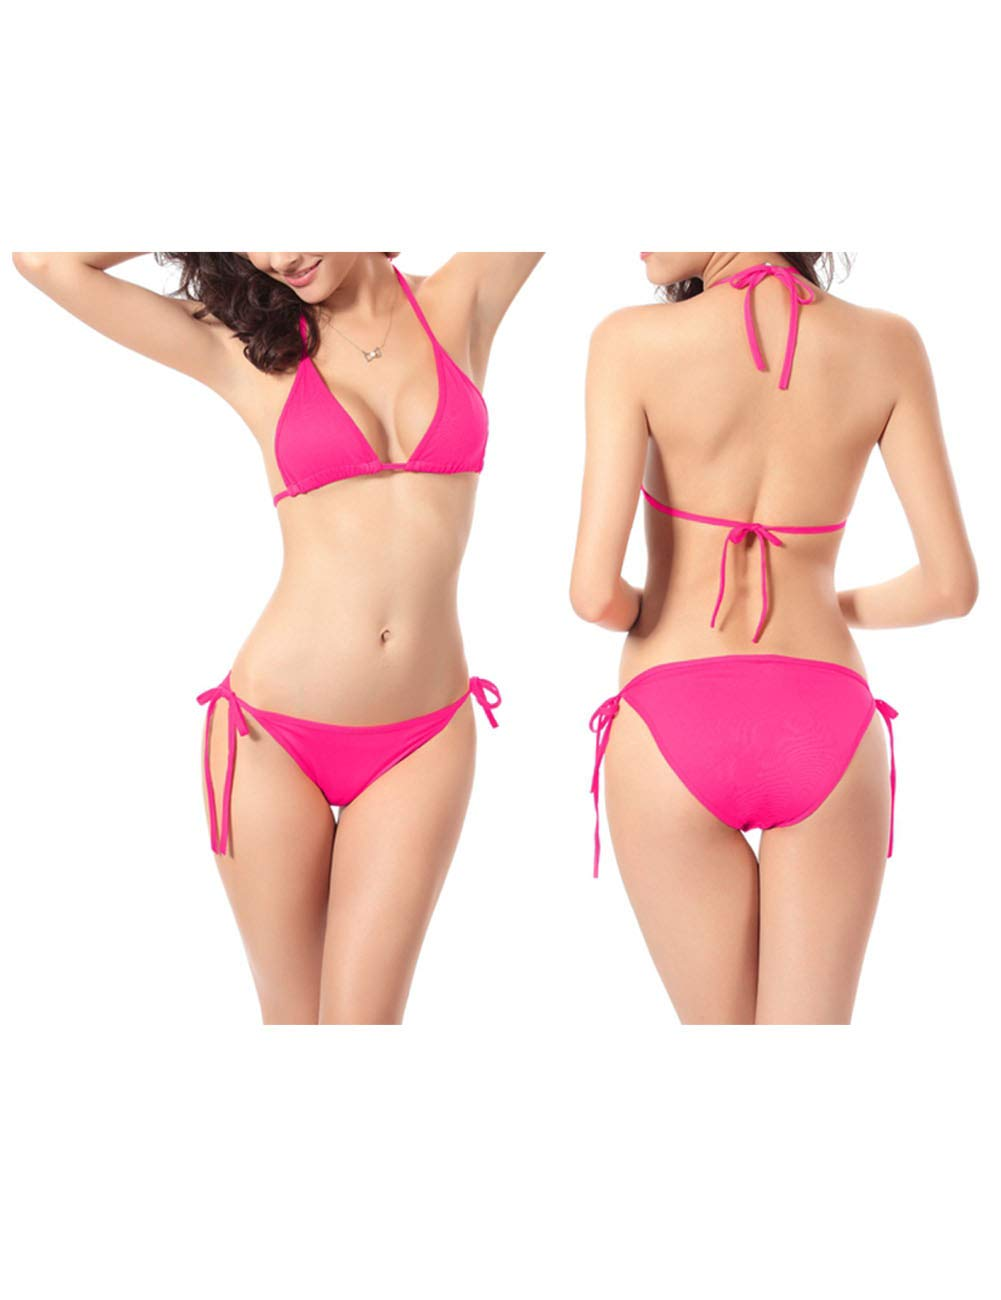 Lyhouse Womens Sexy Bikini Set Push-up Non-Padded Swimsuit Swimwear Bathing Suit Beachwear for Sports Outdoors Swimming Two Piece One Free Size Stretch (Rosered_style02)